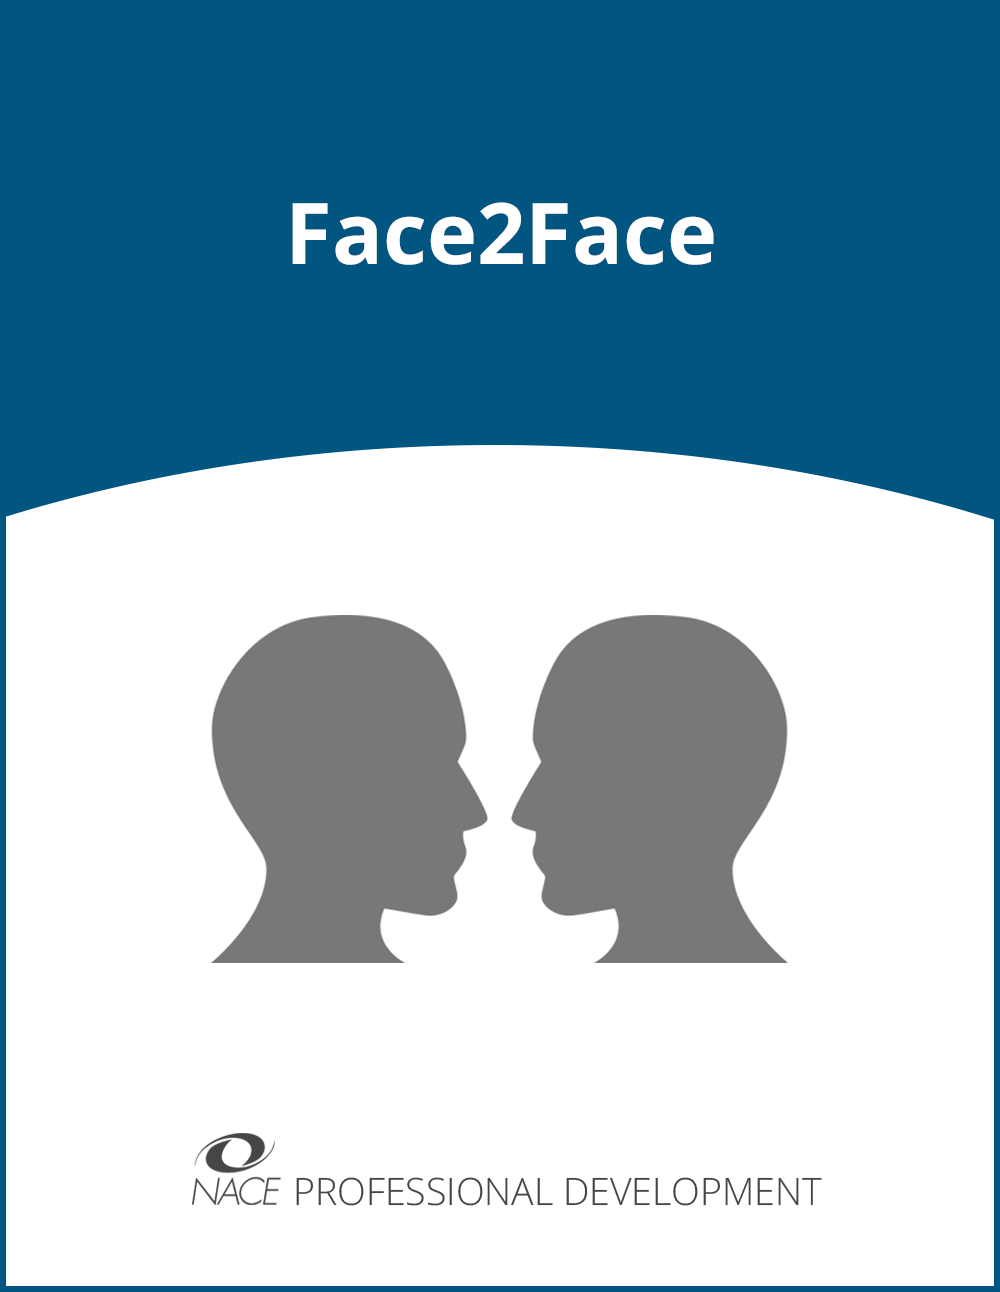 Face2Face: Dallas, TX